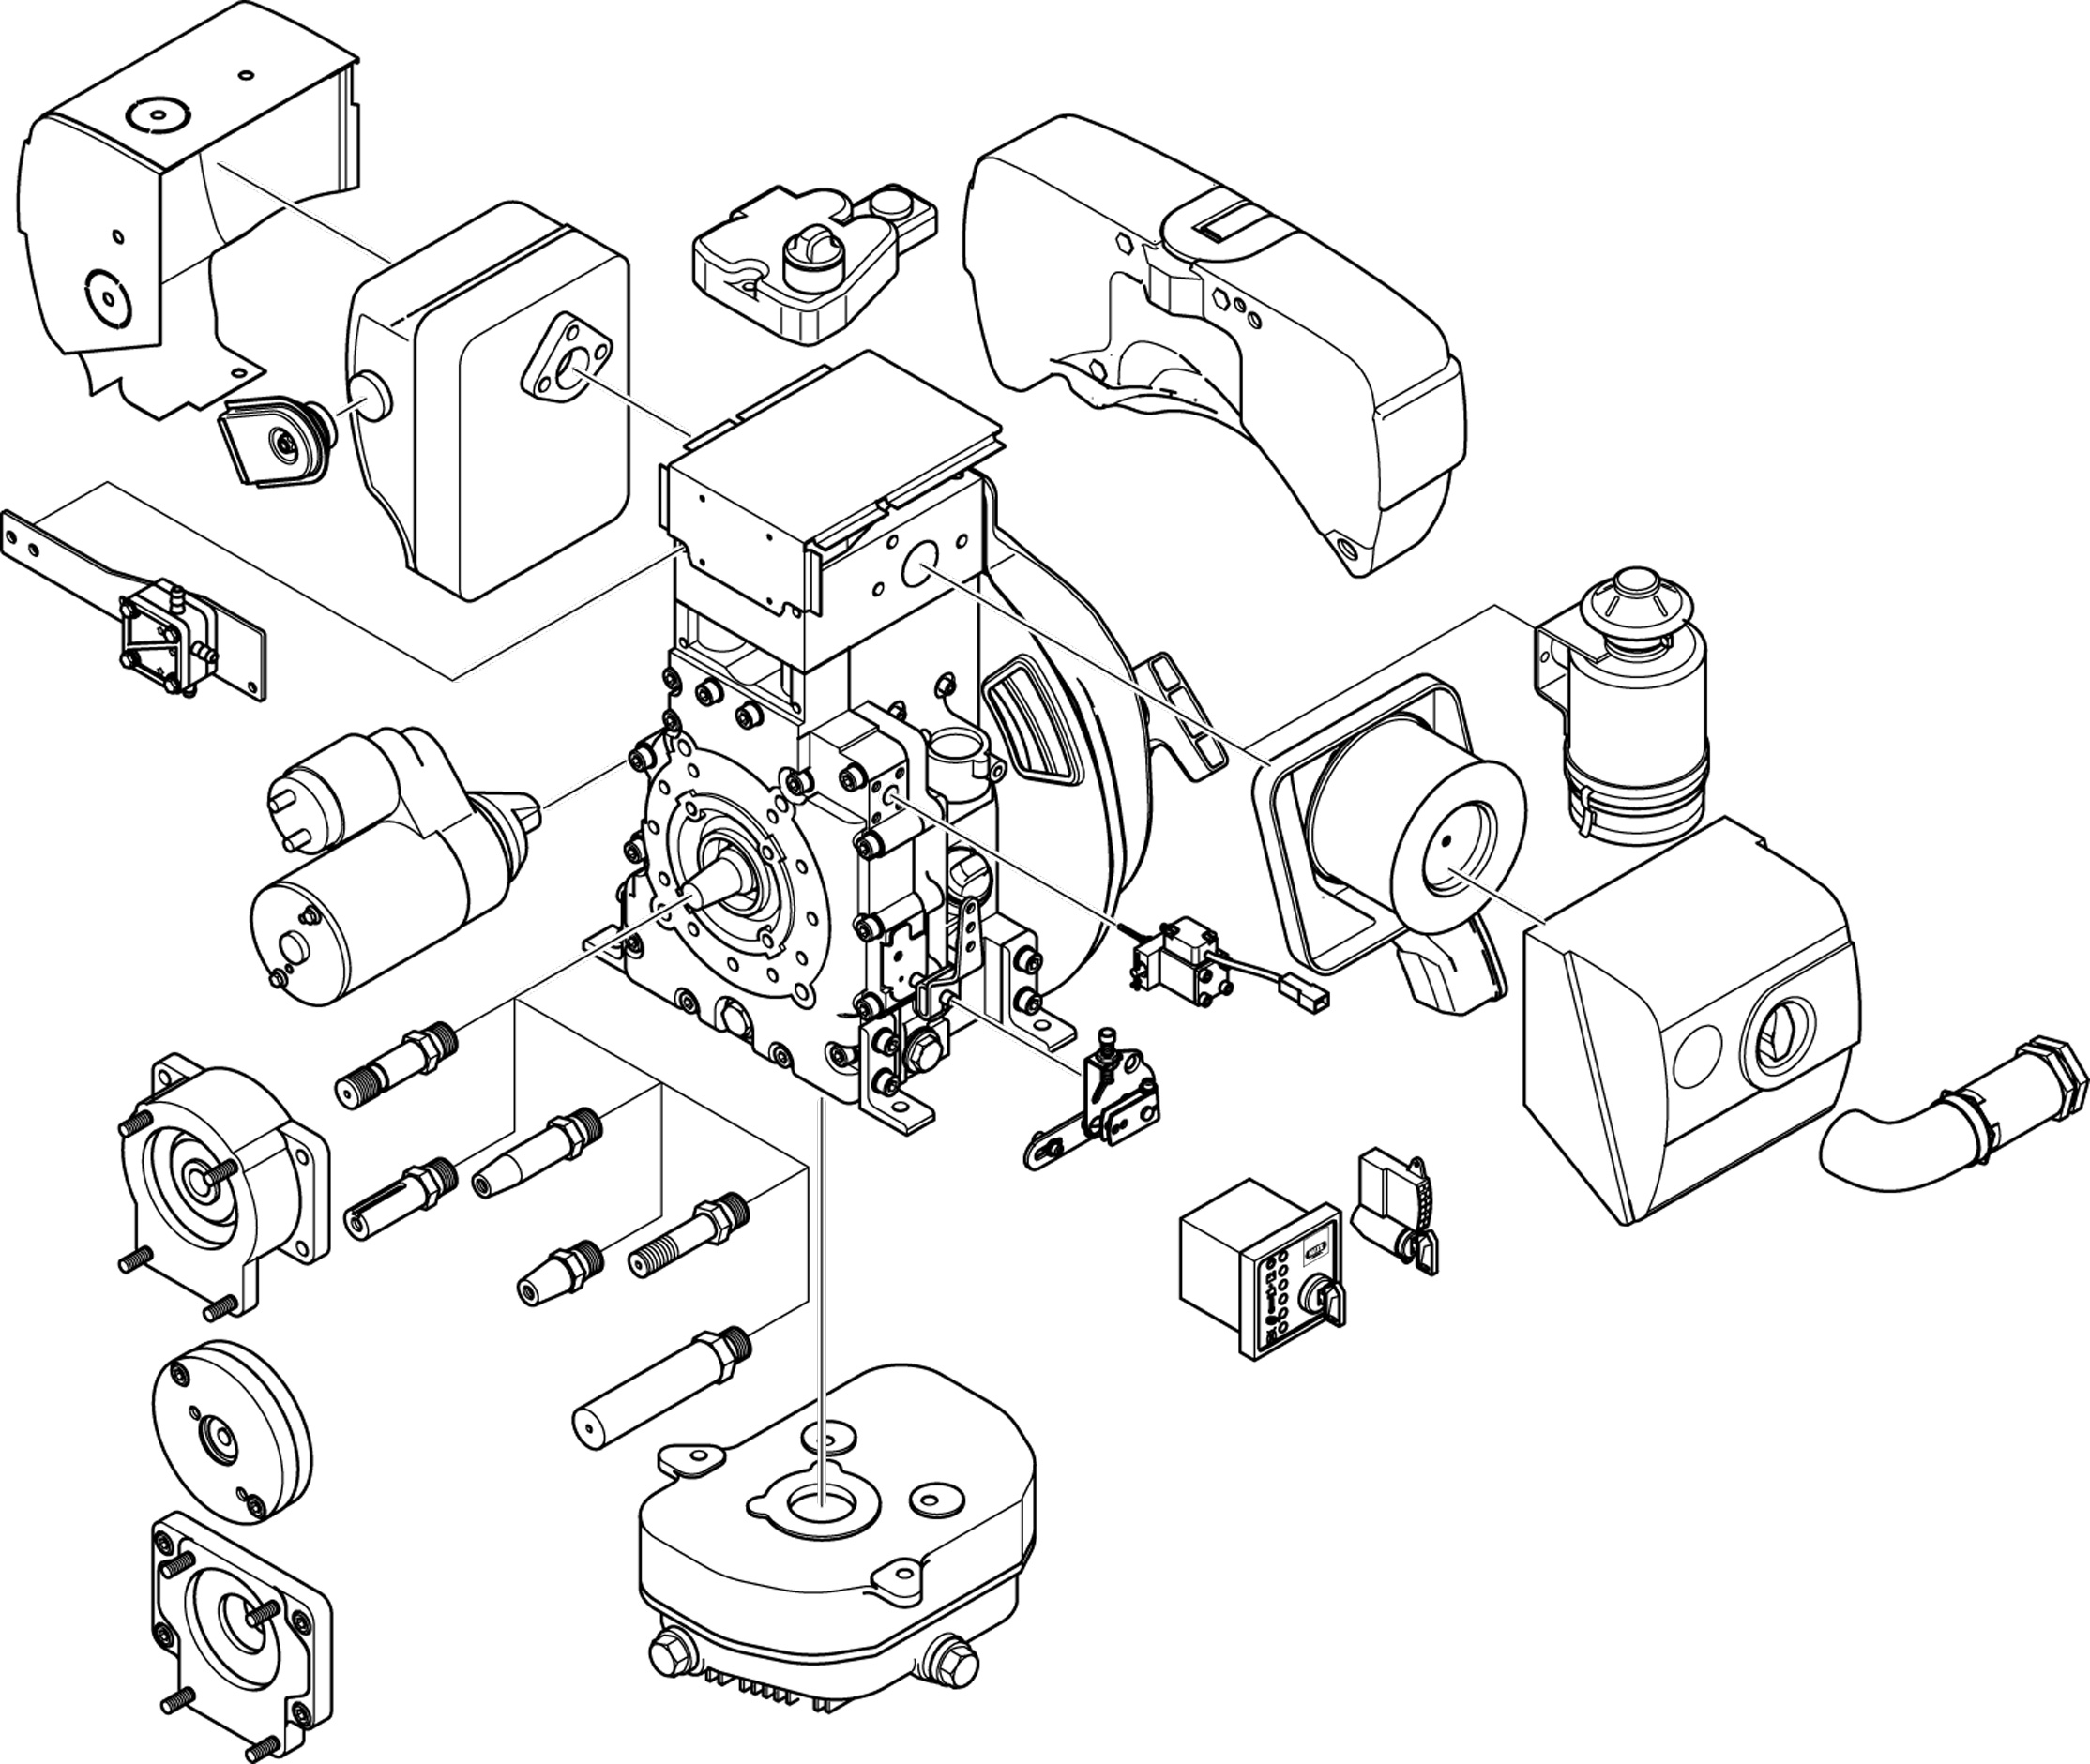 Engine Parts Drawing At Free For Personal Use Cummins Wiring Diagram 2228x1881 B Series Small Diesel Single Cylinder